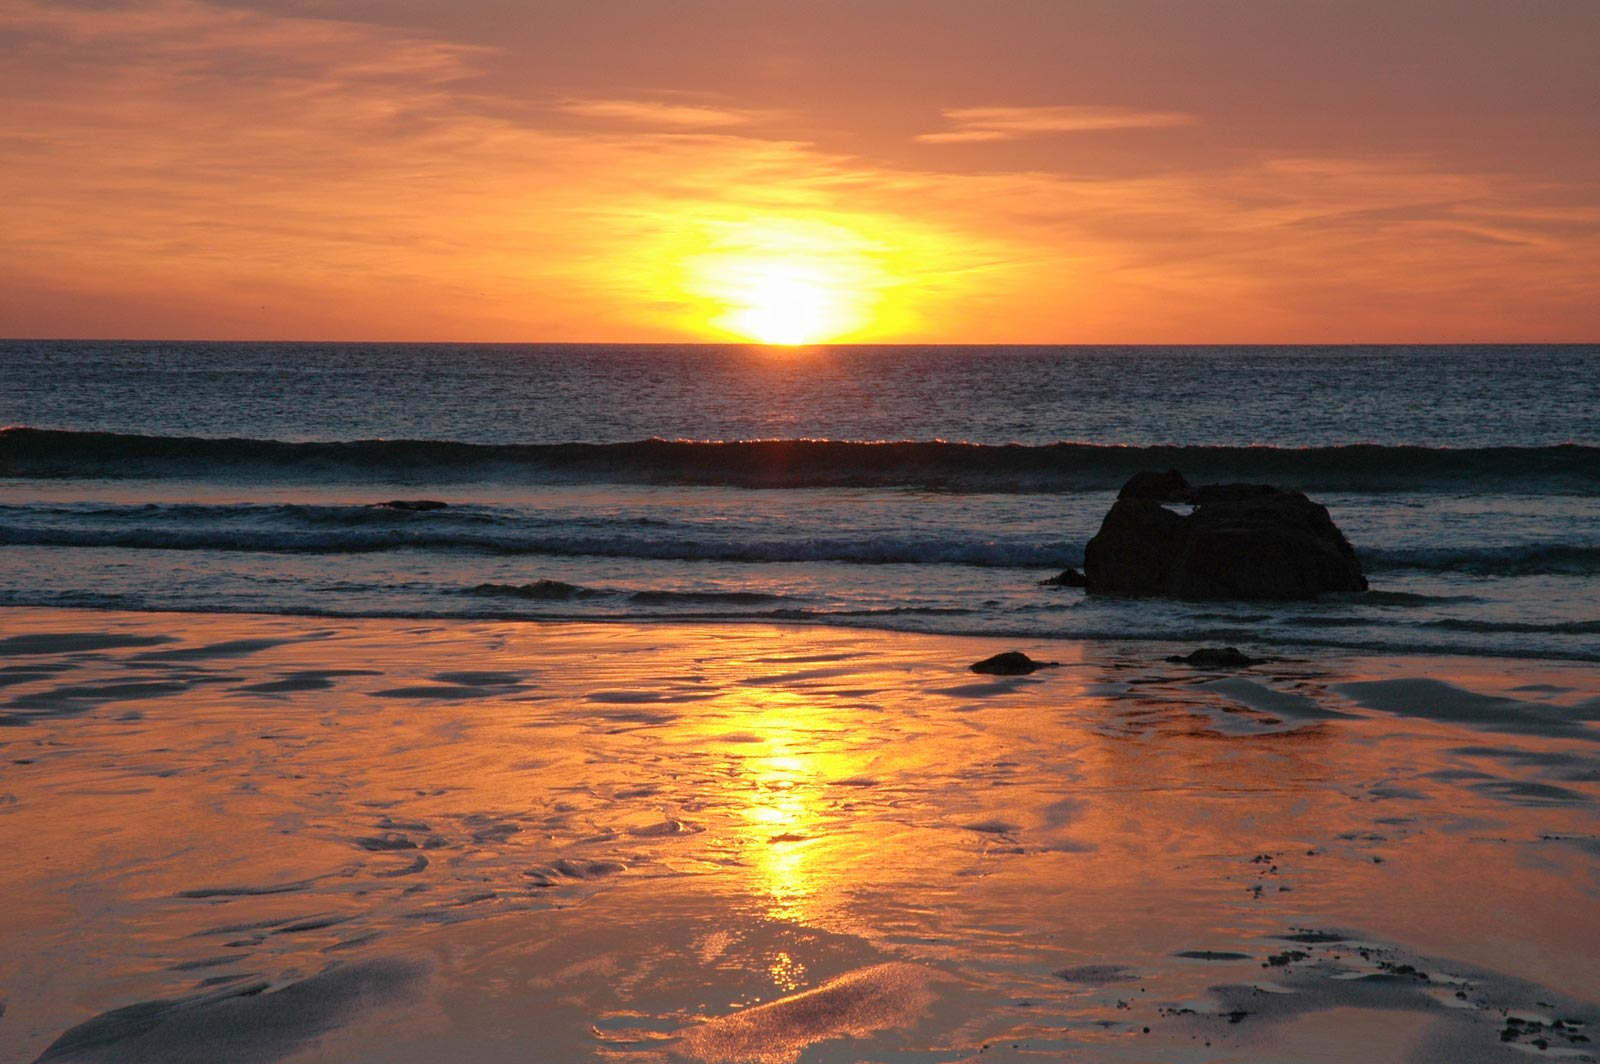 sunset beach hindu dating site This live wallpaper brings you in the atmosphere of a gorgeous summer evening on the beach enjoy the relaxing and beautiful ocean beach in sunset, on the screen of your phone or tablet.